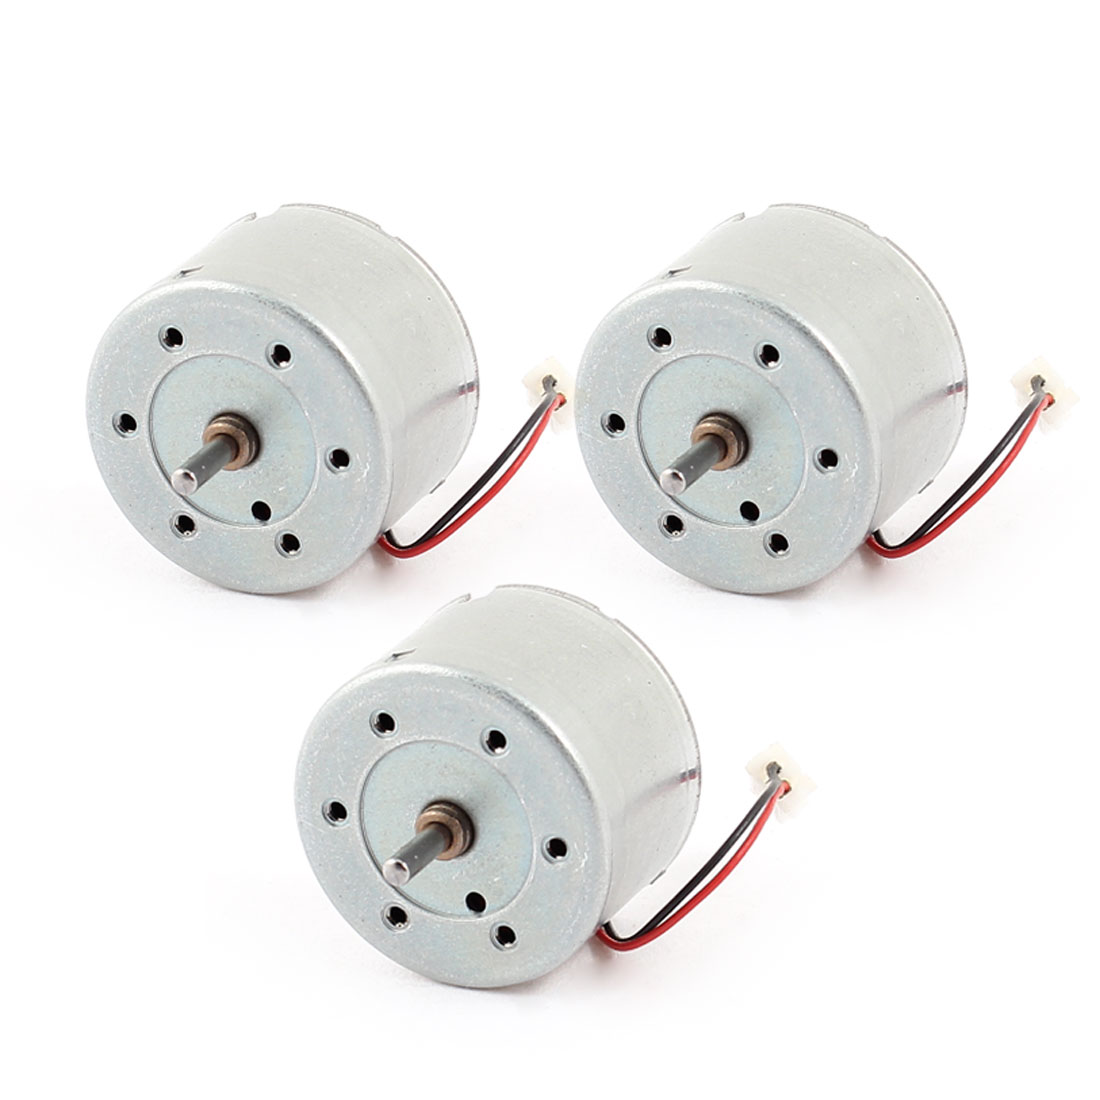 3000RPM-Speed-High-Torque-Cylinder-Shape-Electric-DC-Geared-Motor-6V-3Pcs